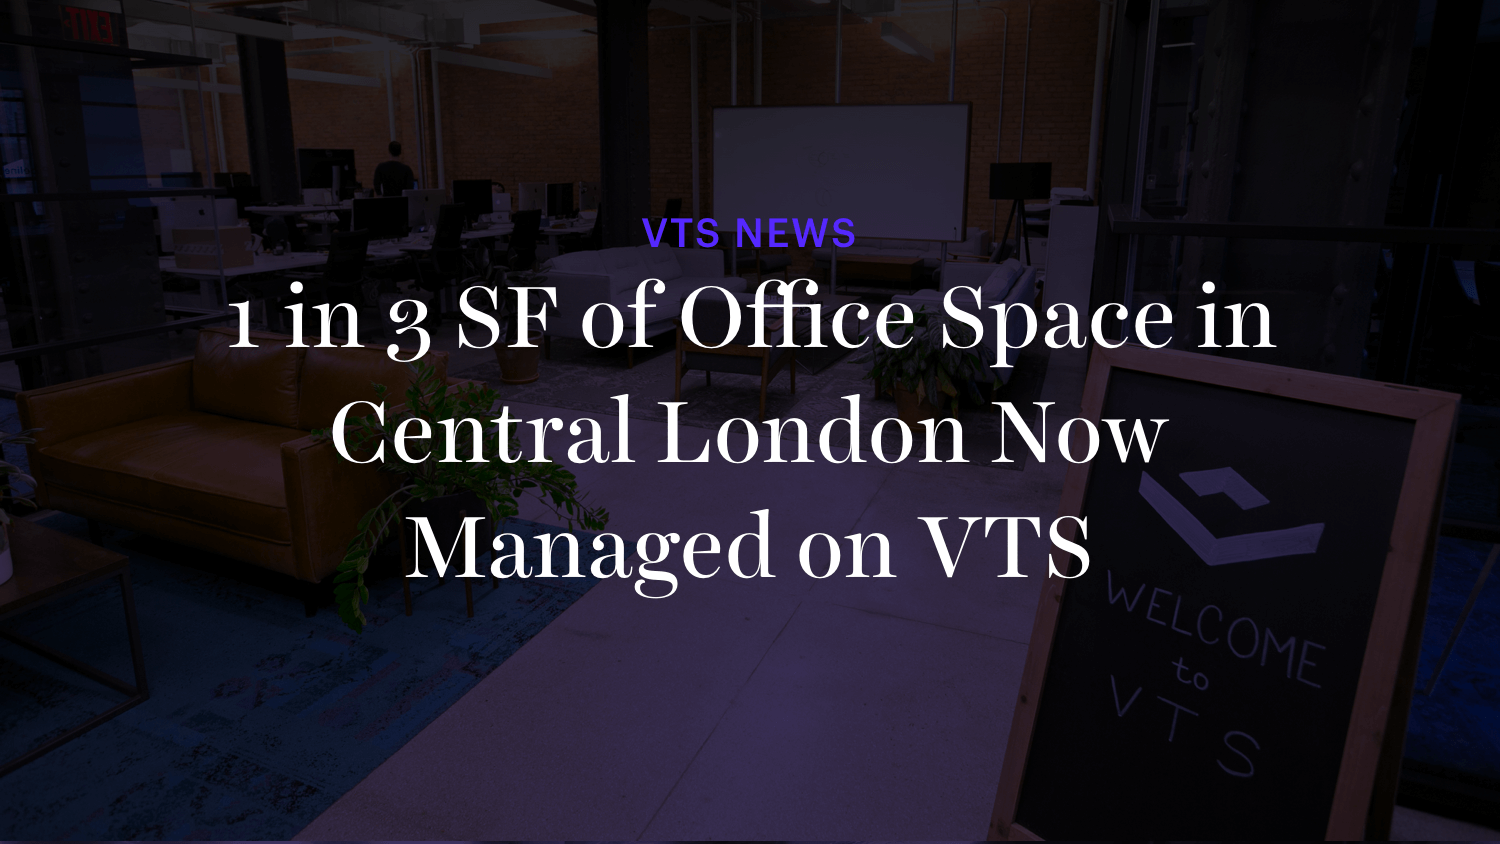 1 in 3 SF of Office Space in Central London Now Managed on VTS Leasing and Asset Management Platform